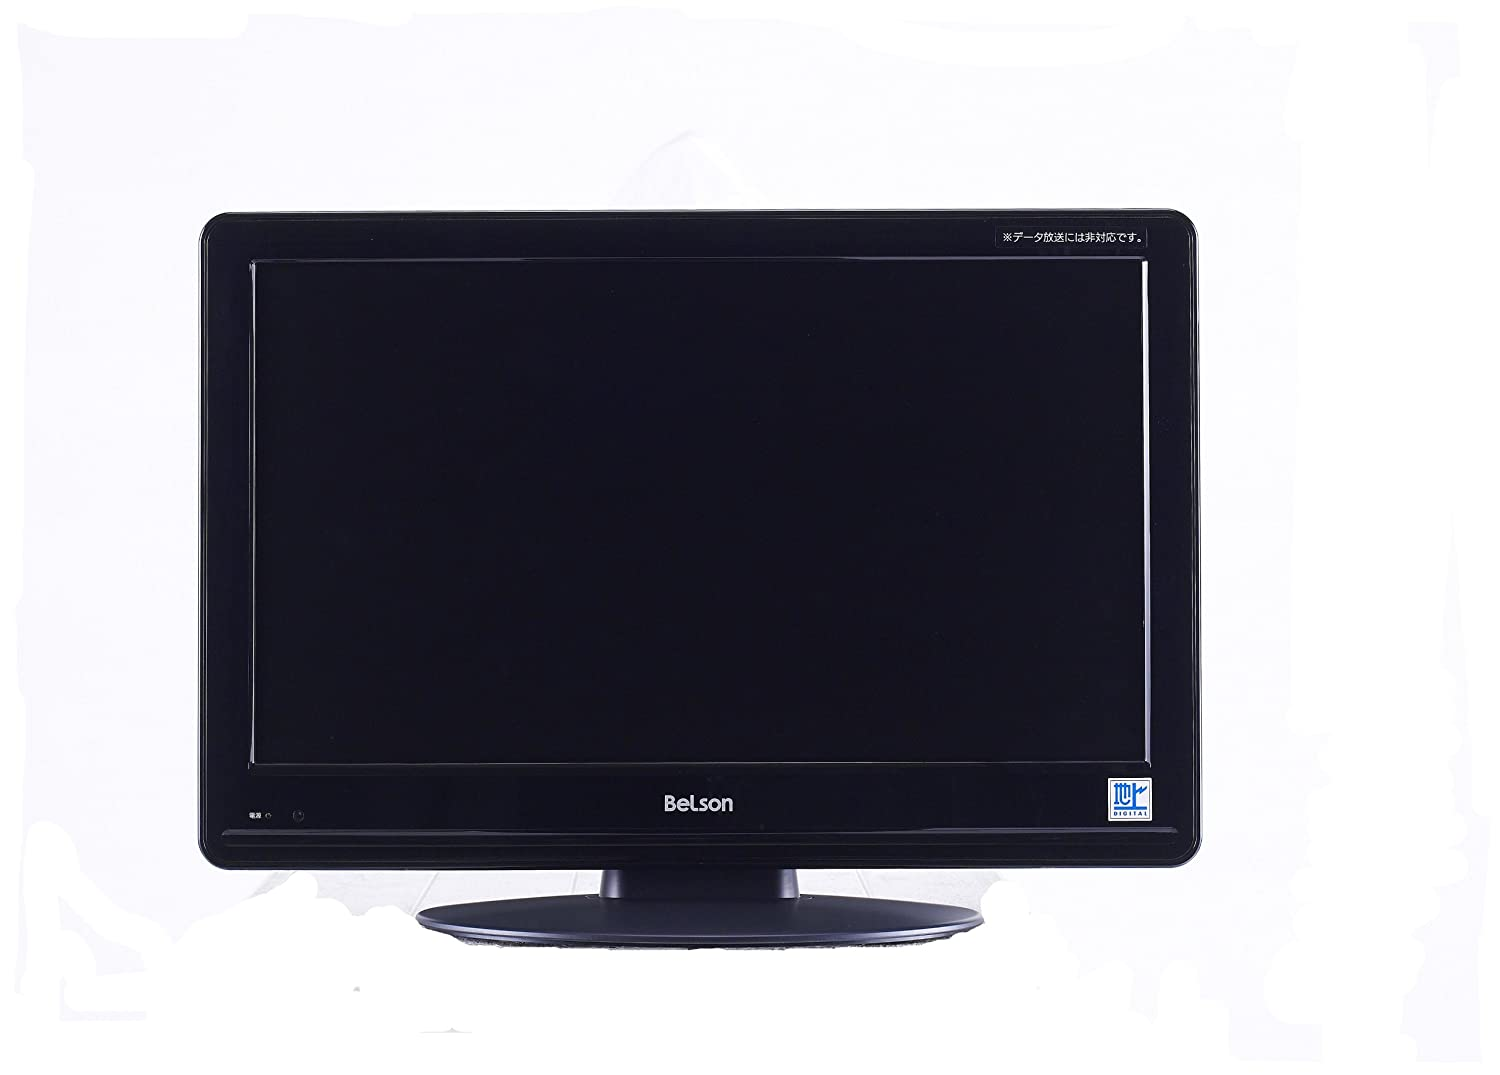 Belson 19V型 液晶 テレビ DS191-B2 B009JX8GGE